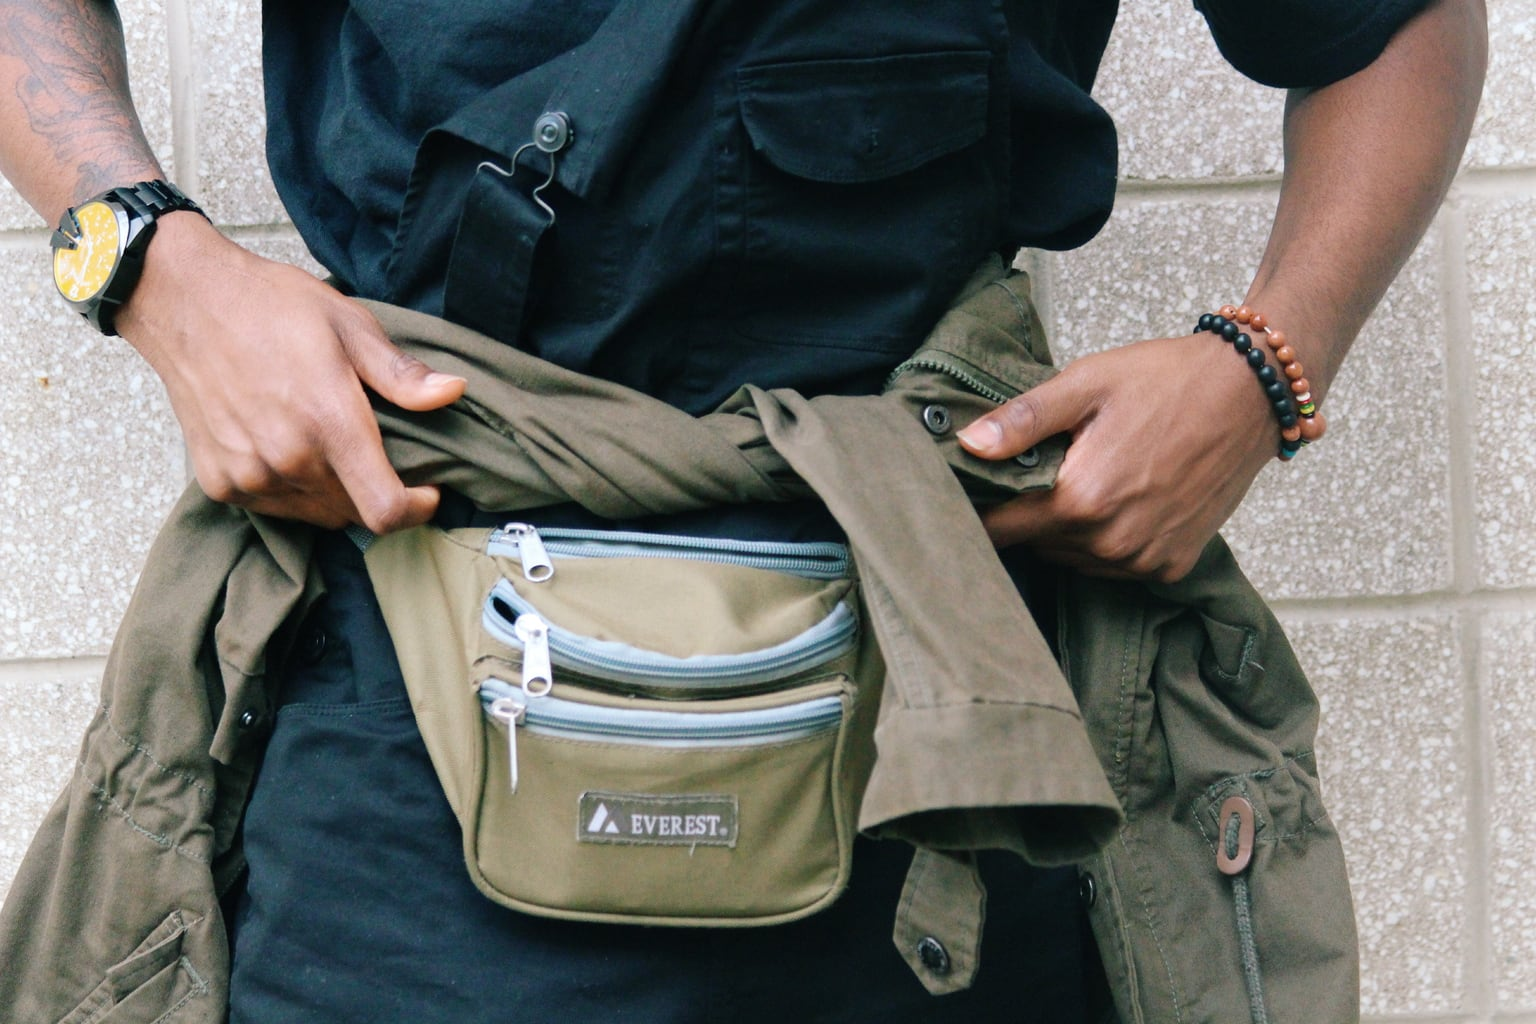 Karon wears a light brown fanny pack with grey zippers and an olive anorak jacket. He accessorizes with black and orange beaded bracelets.